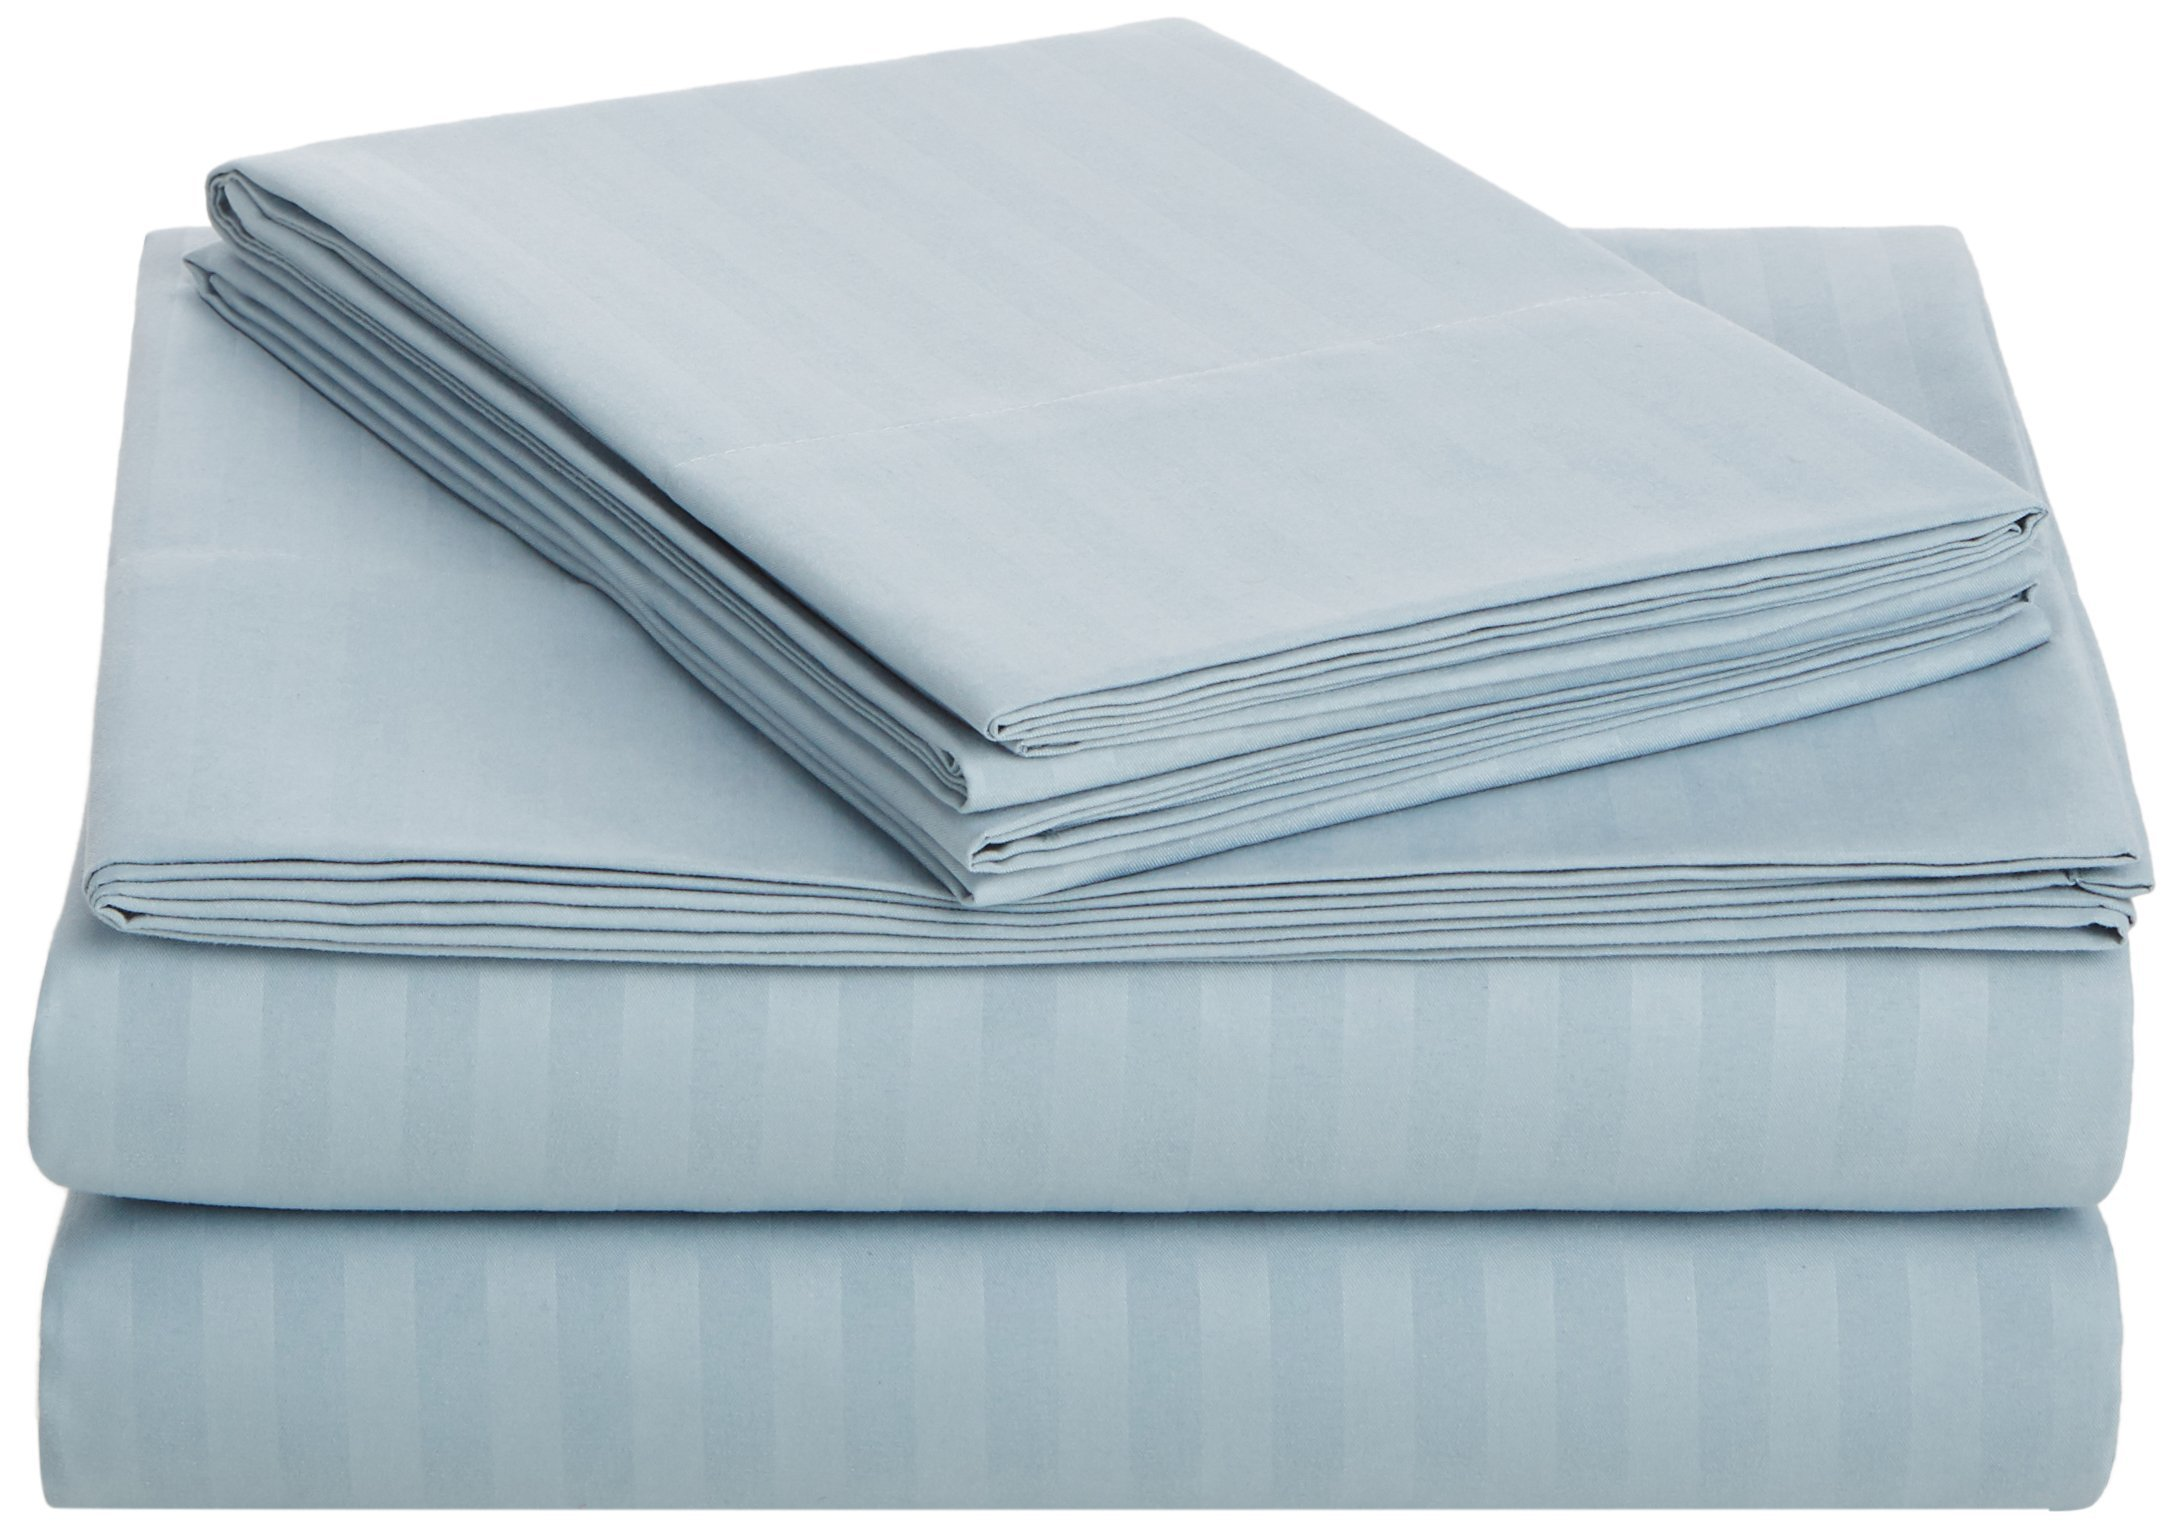 AmazonBasics Deluxe Microfiber Striped Sheet Set, Spa Blue, King